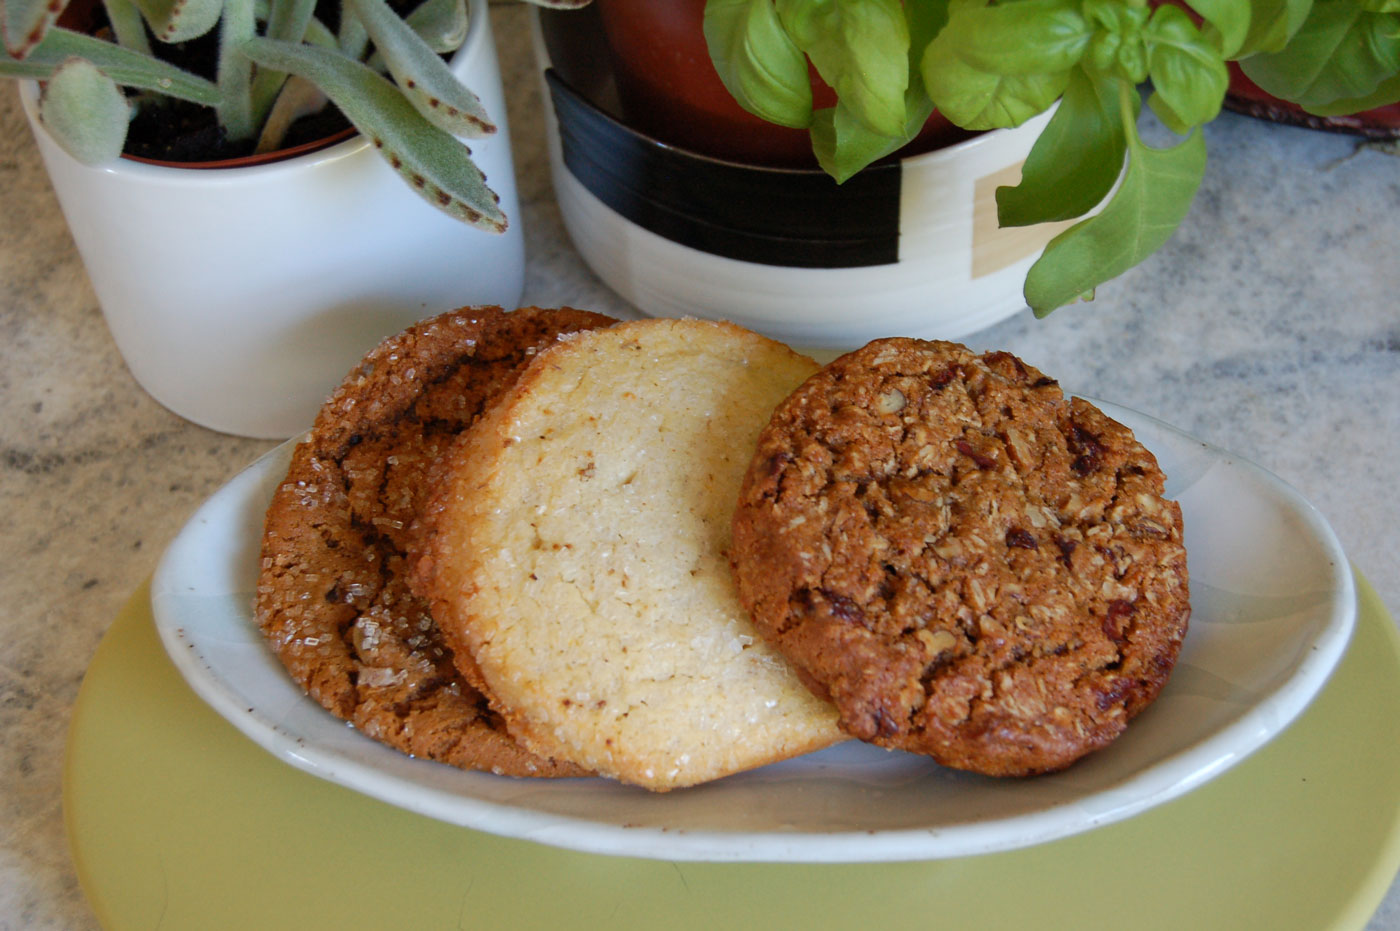 Firebrand Bakery's Ginger, Lemon Lavender and Oatmeal cookies